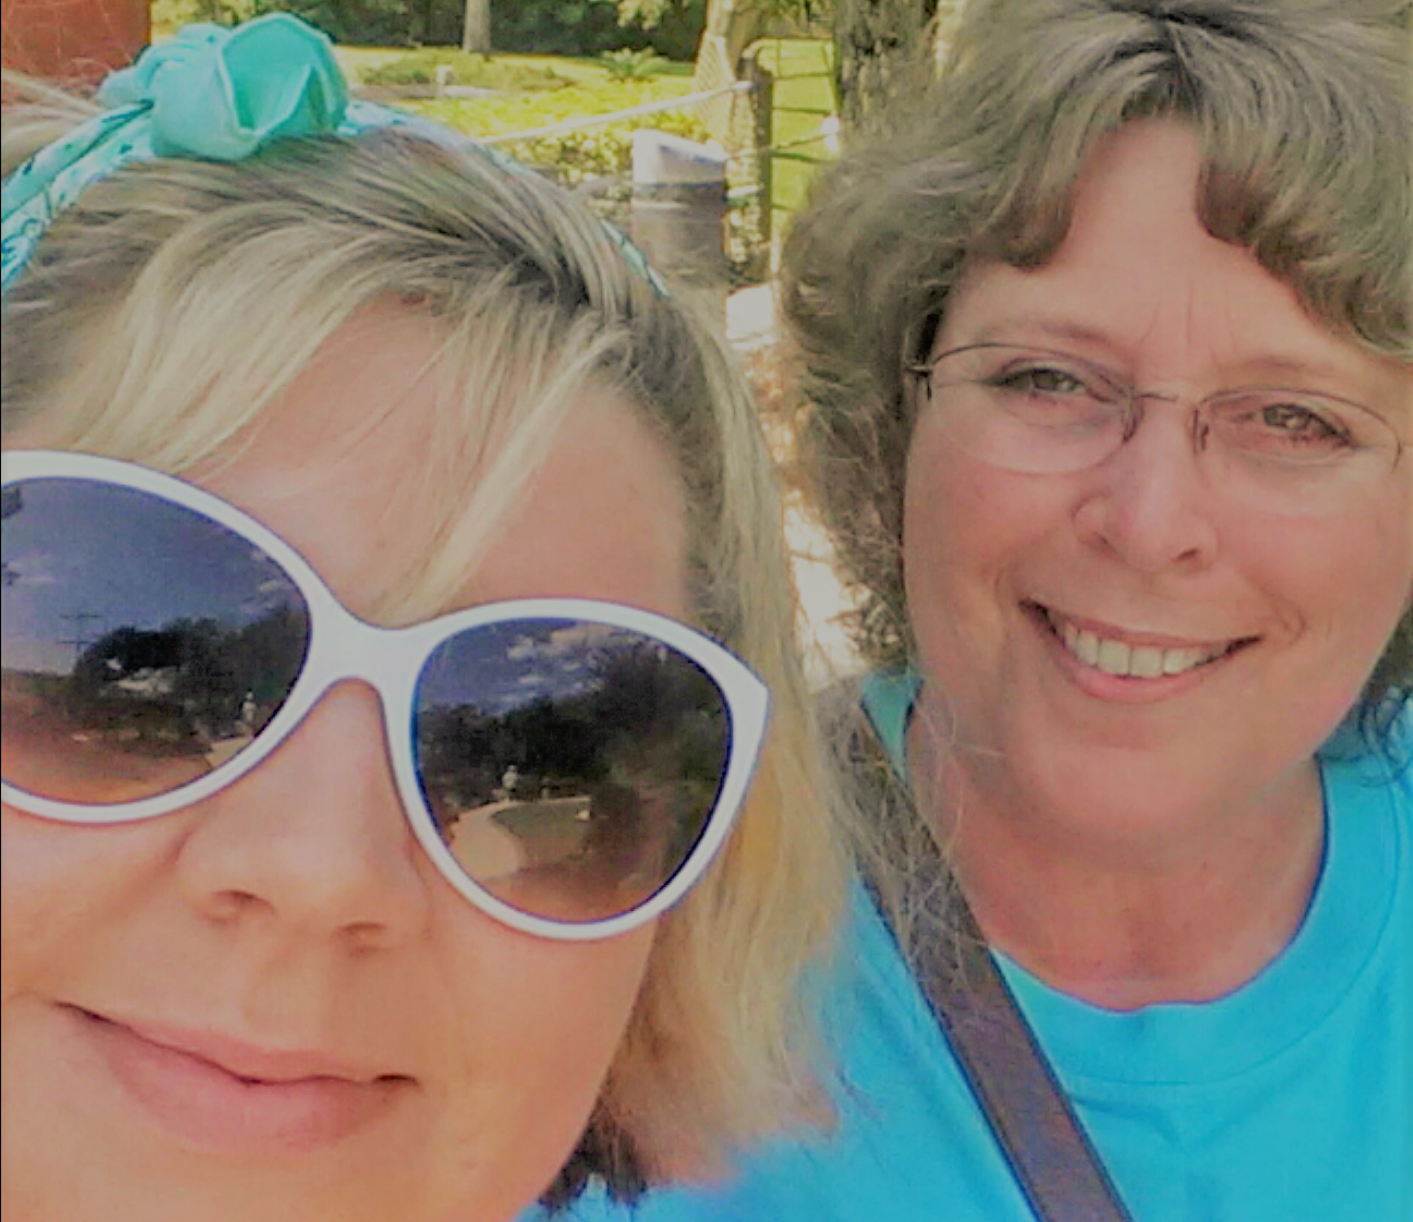 Selfie of woman and her mother, color photo